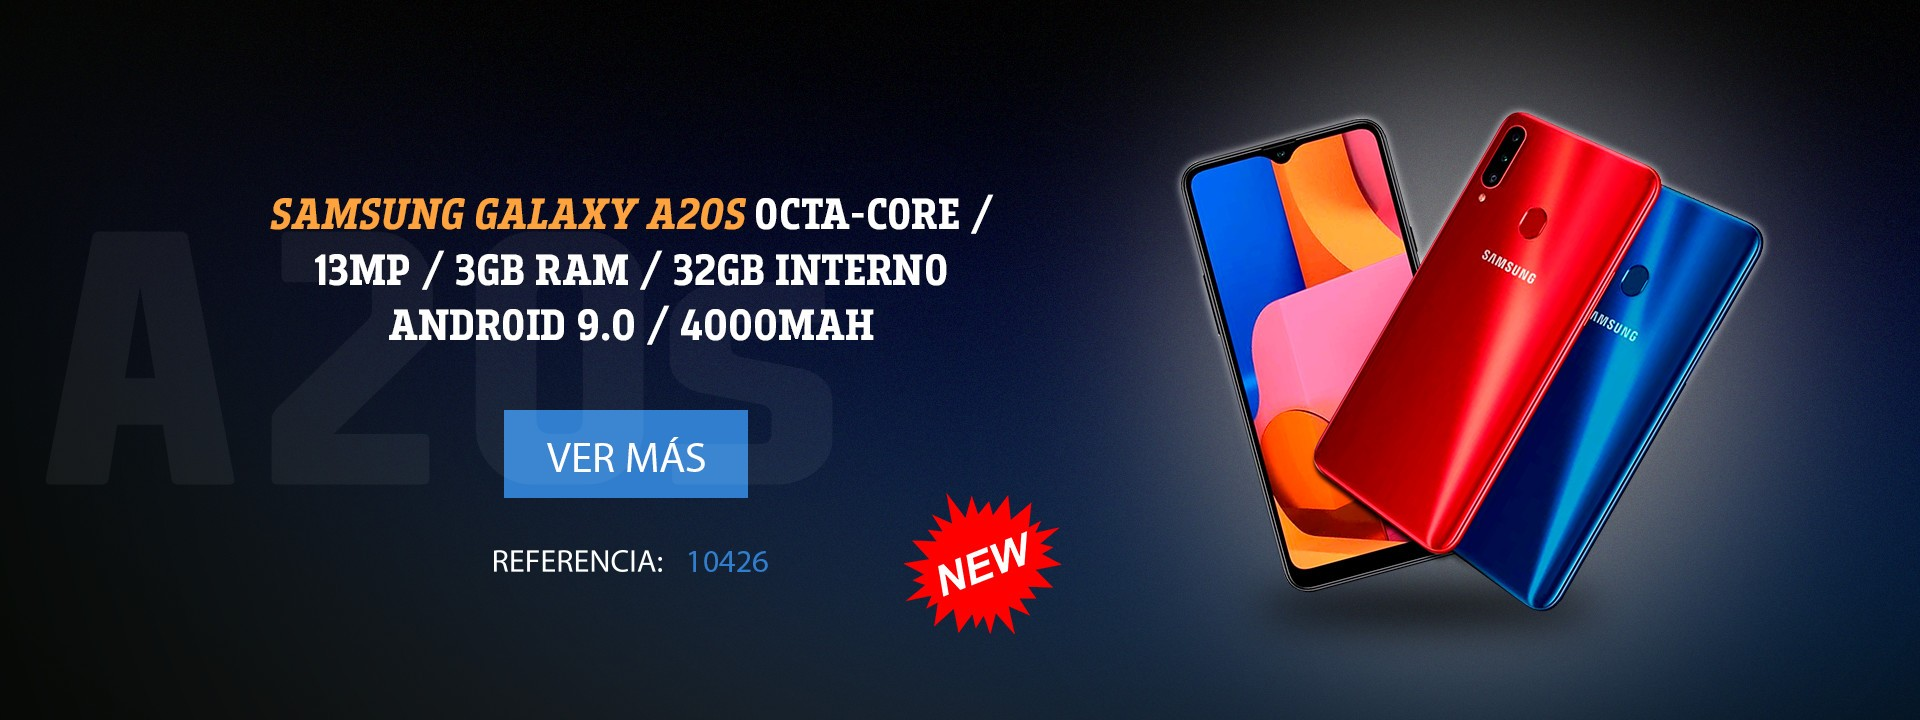 Samsung Galaxy A20s OctaCore 13MP 3GB RAM 32GB Interno Android 9.0 4000mAh